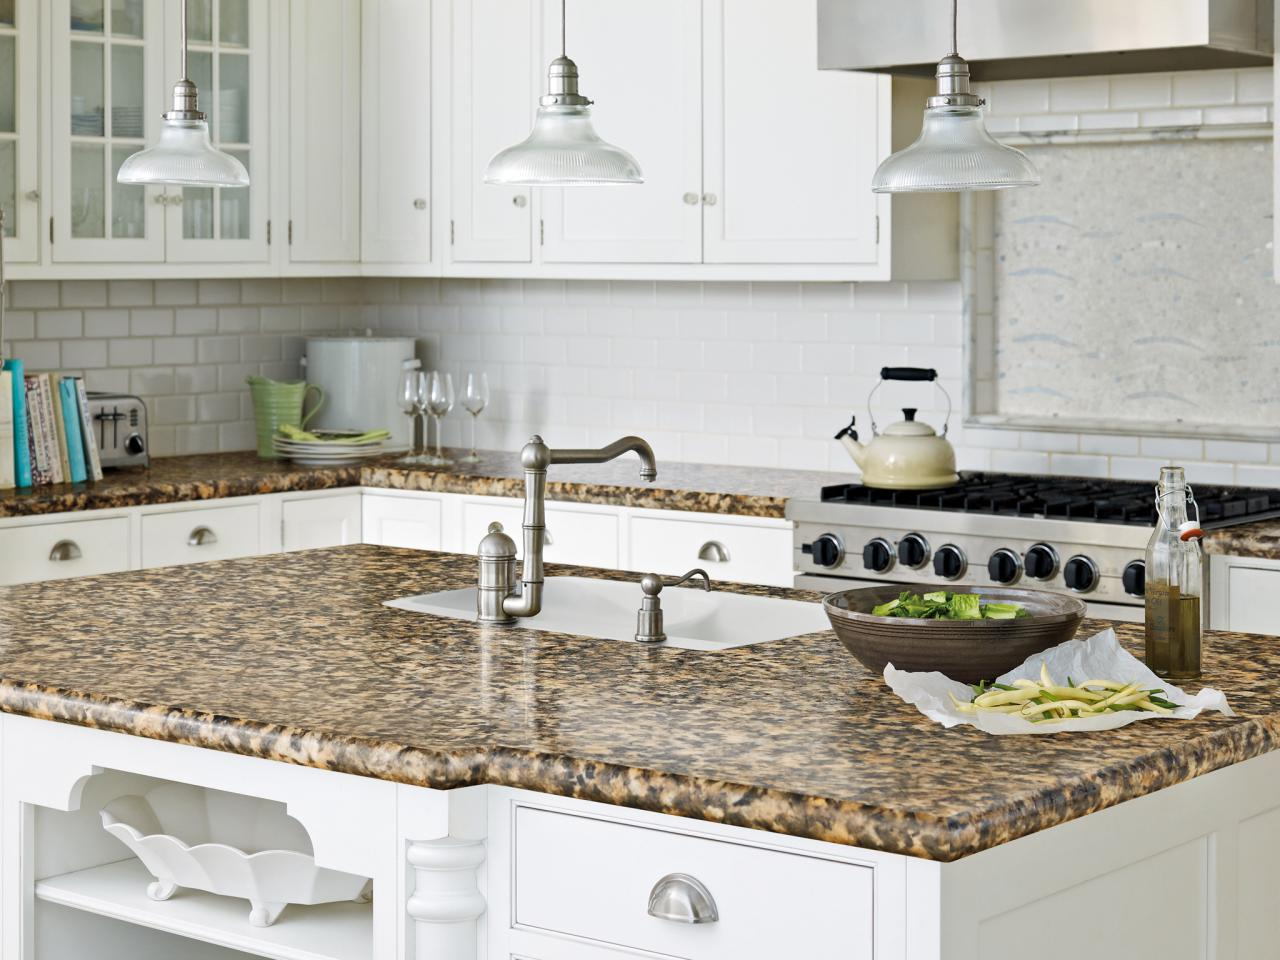 Maximum Home Value Kitchen Projects: Countertops And Sinks